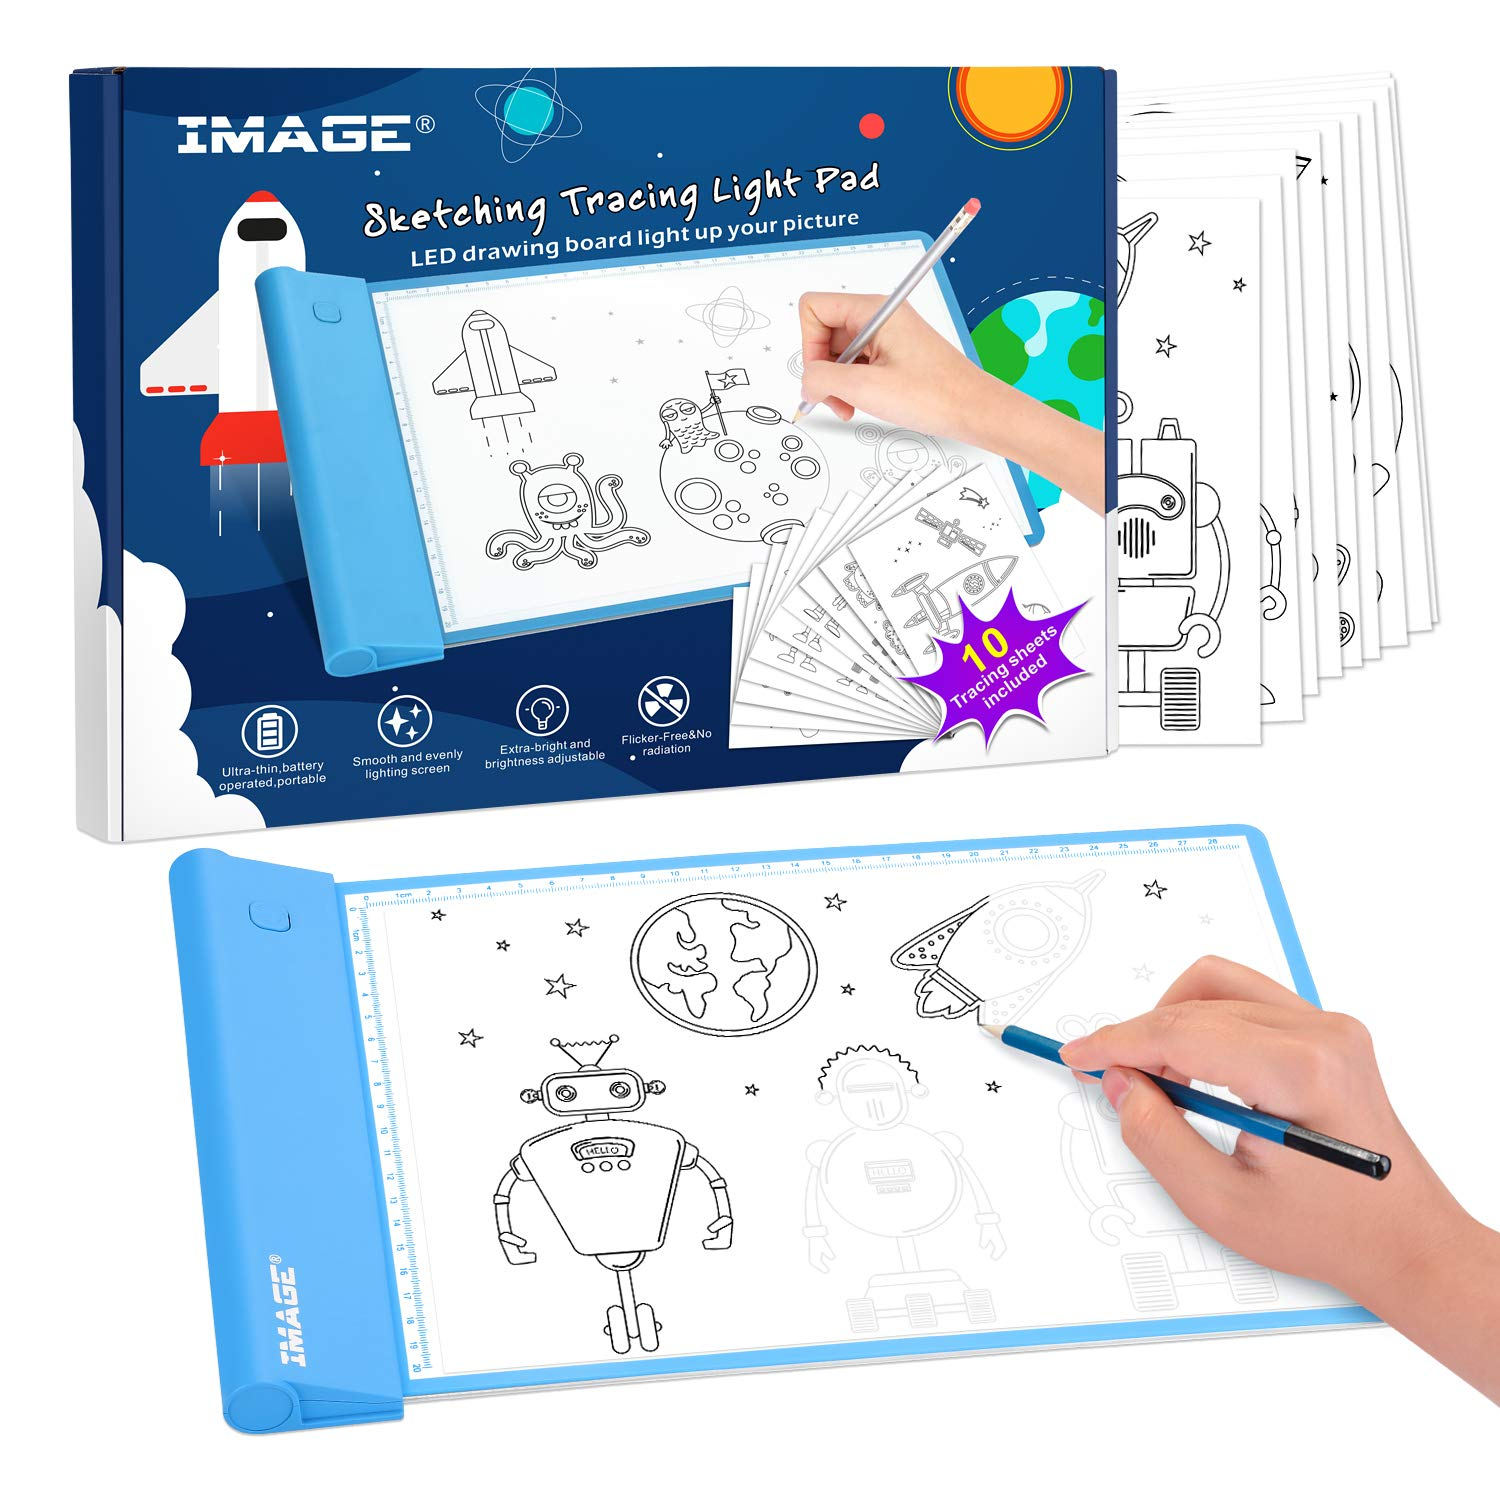 IMAGE Light Up Tracing Pad Blue Drawing Tablet Coloring Board for Kids Children Toy Gift for Boys Girls Ages 6,7,8,9,10…